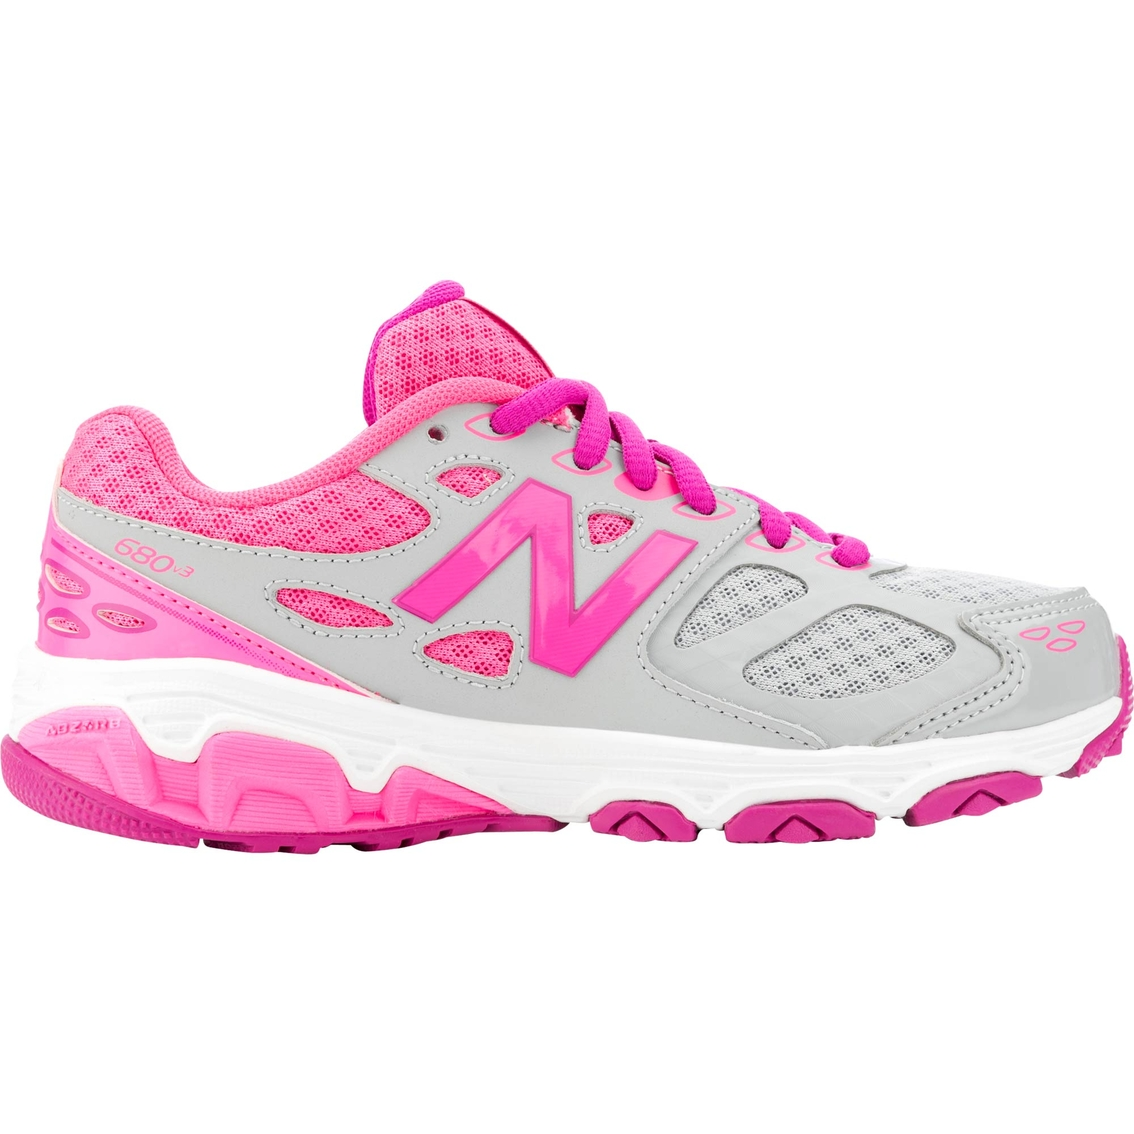 a9431824416 new zealand check out nike basketballs breast cancer awareness pack 16  ce214 db072  cheap new balance girls kr680say running shoes dff56 02ffc